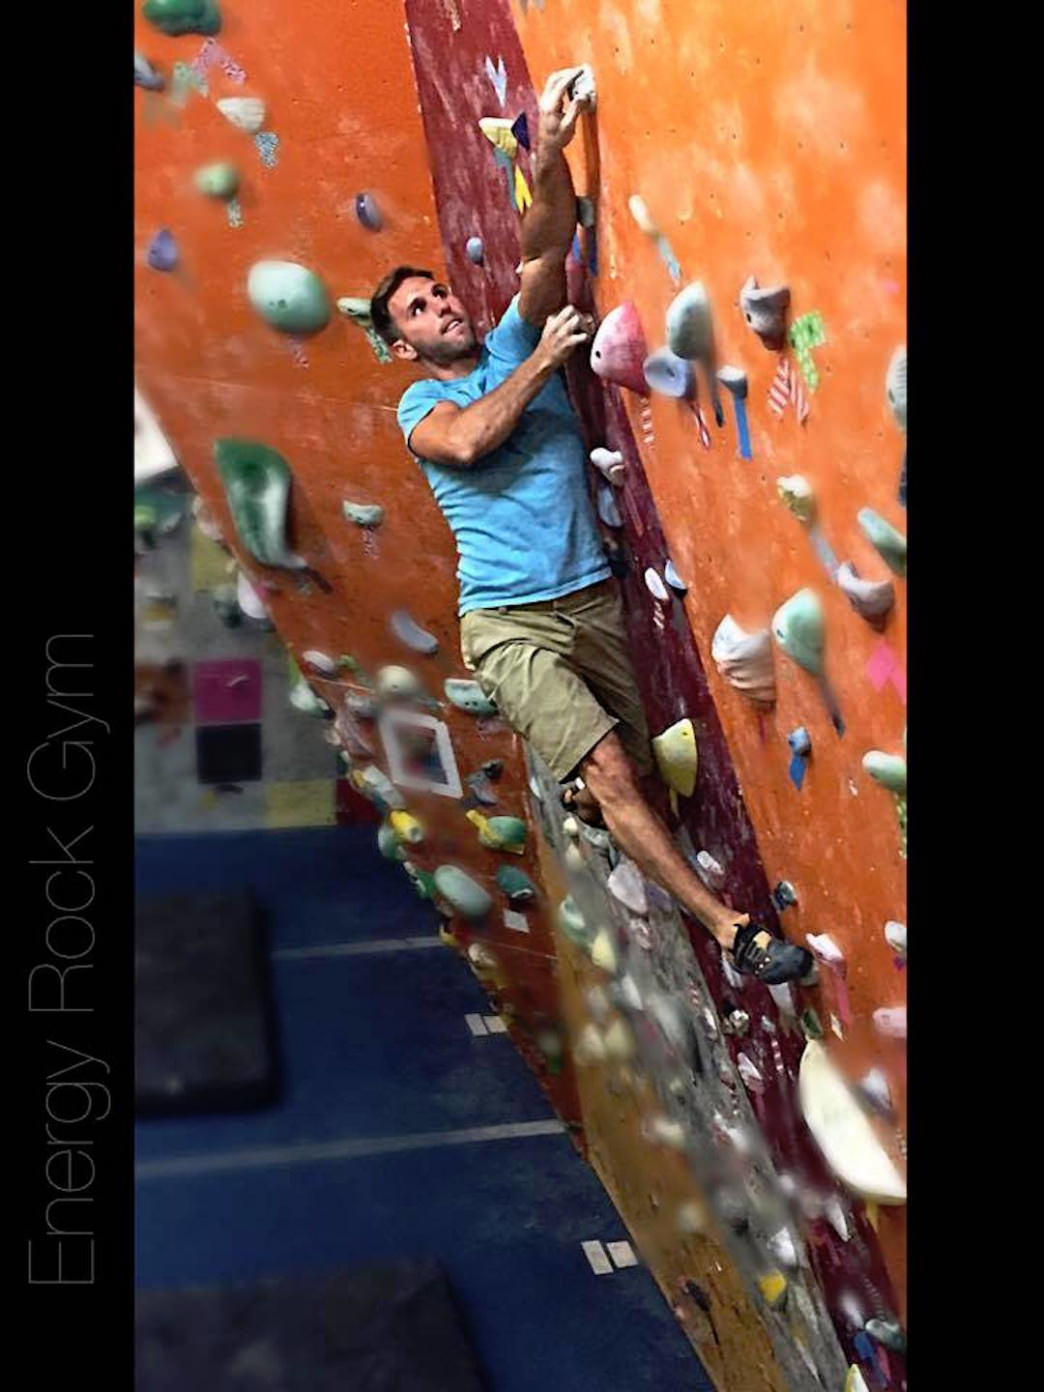 Get in a quick training session after work at an indoor climbing gym.     David Statler